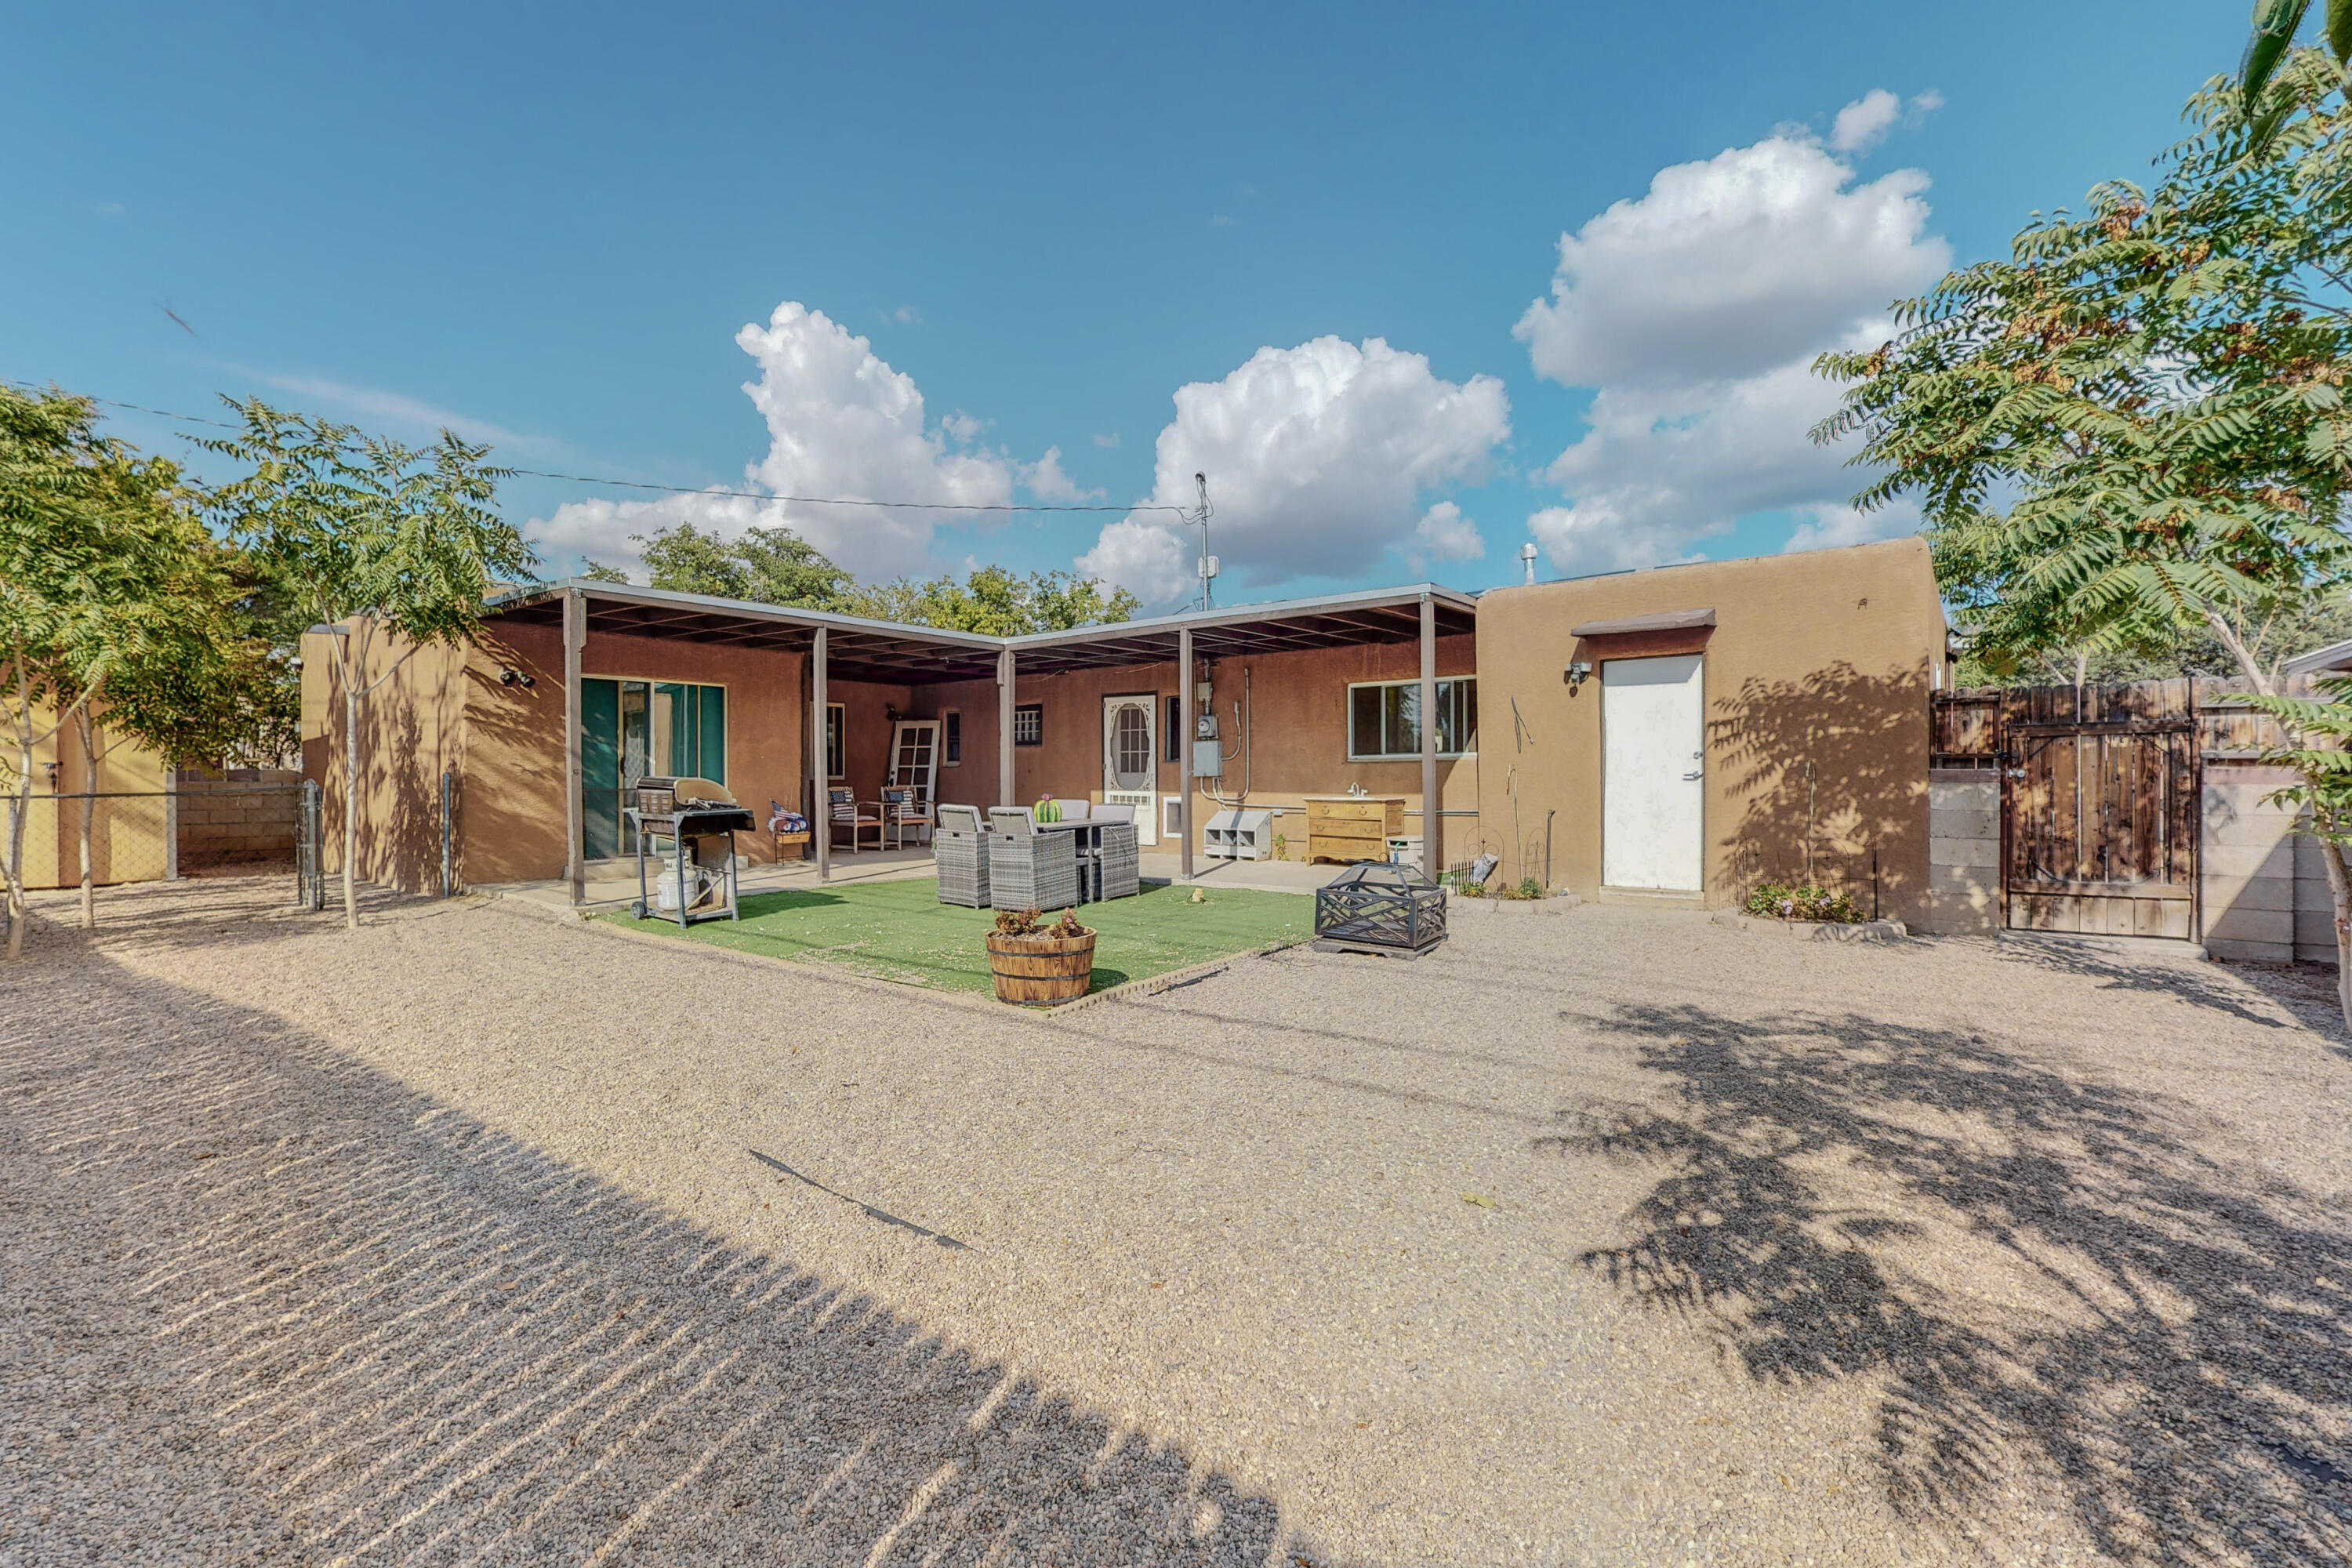 Come see this one before it's gone! Walking distance to park, school, ABQ Uptown, Trader Joe's. Easy freeway access. New Refrigerated Air/Heat unit, see invoice in documents. Added 220 volt circuit to service panel. Vent added to heat/cool laundry room. New Roof 3/2019.  Landscaped backyard with gravel and turf. Huge Sturdy Shed in backyard. Ever dreamt of having a dressing room? Well now is your chance. Owner's Suite has 3 rooms. Make one your gym or studio and one your dressing room. Adorable French doors separate the living room from either another bedroom, or an office with extra large walk in closet. Don't forget to check out the secret passageway from the coat closet into the first bedroom! And did I mention the oversized Laundry Room?